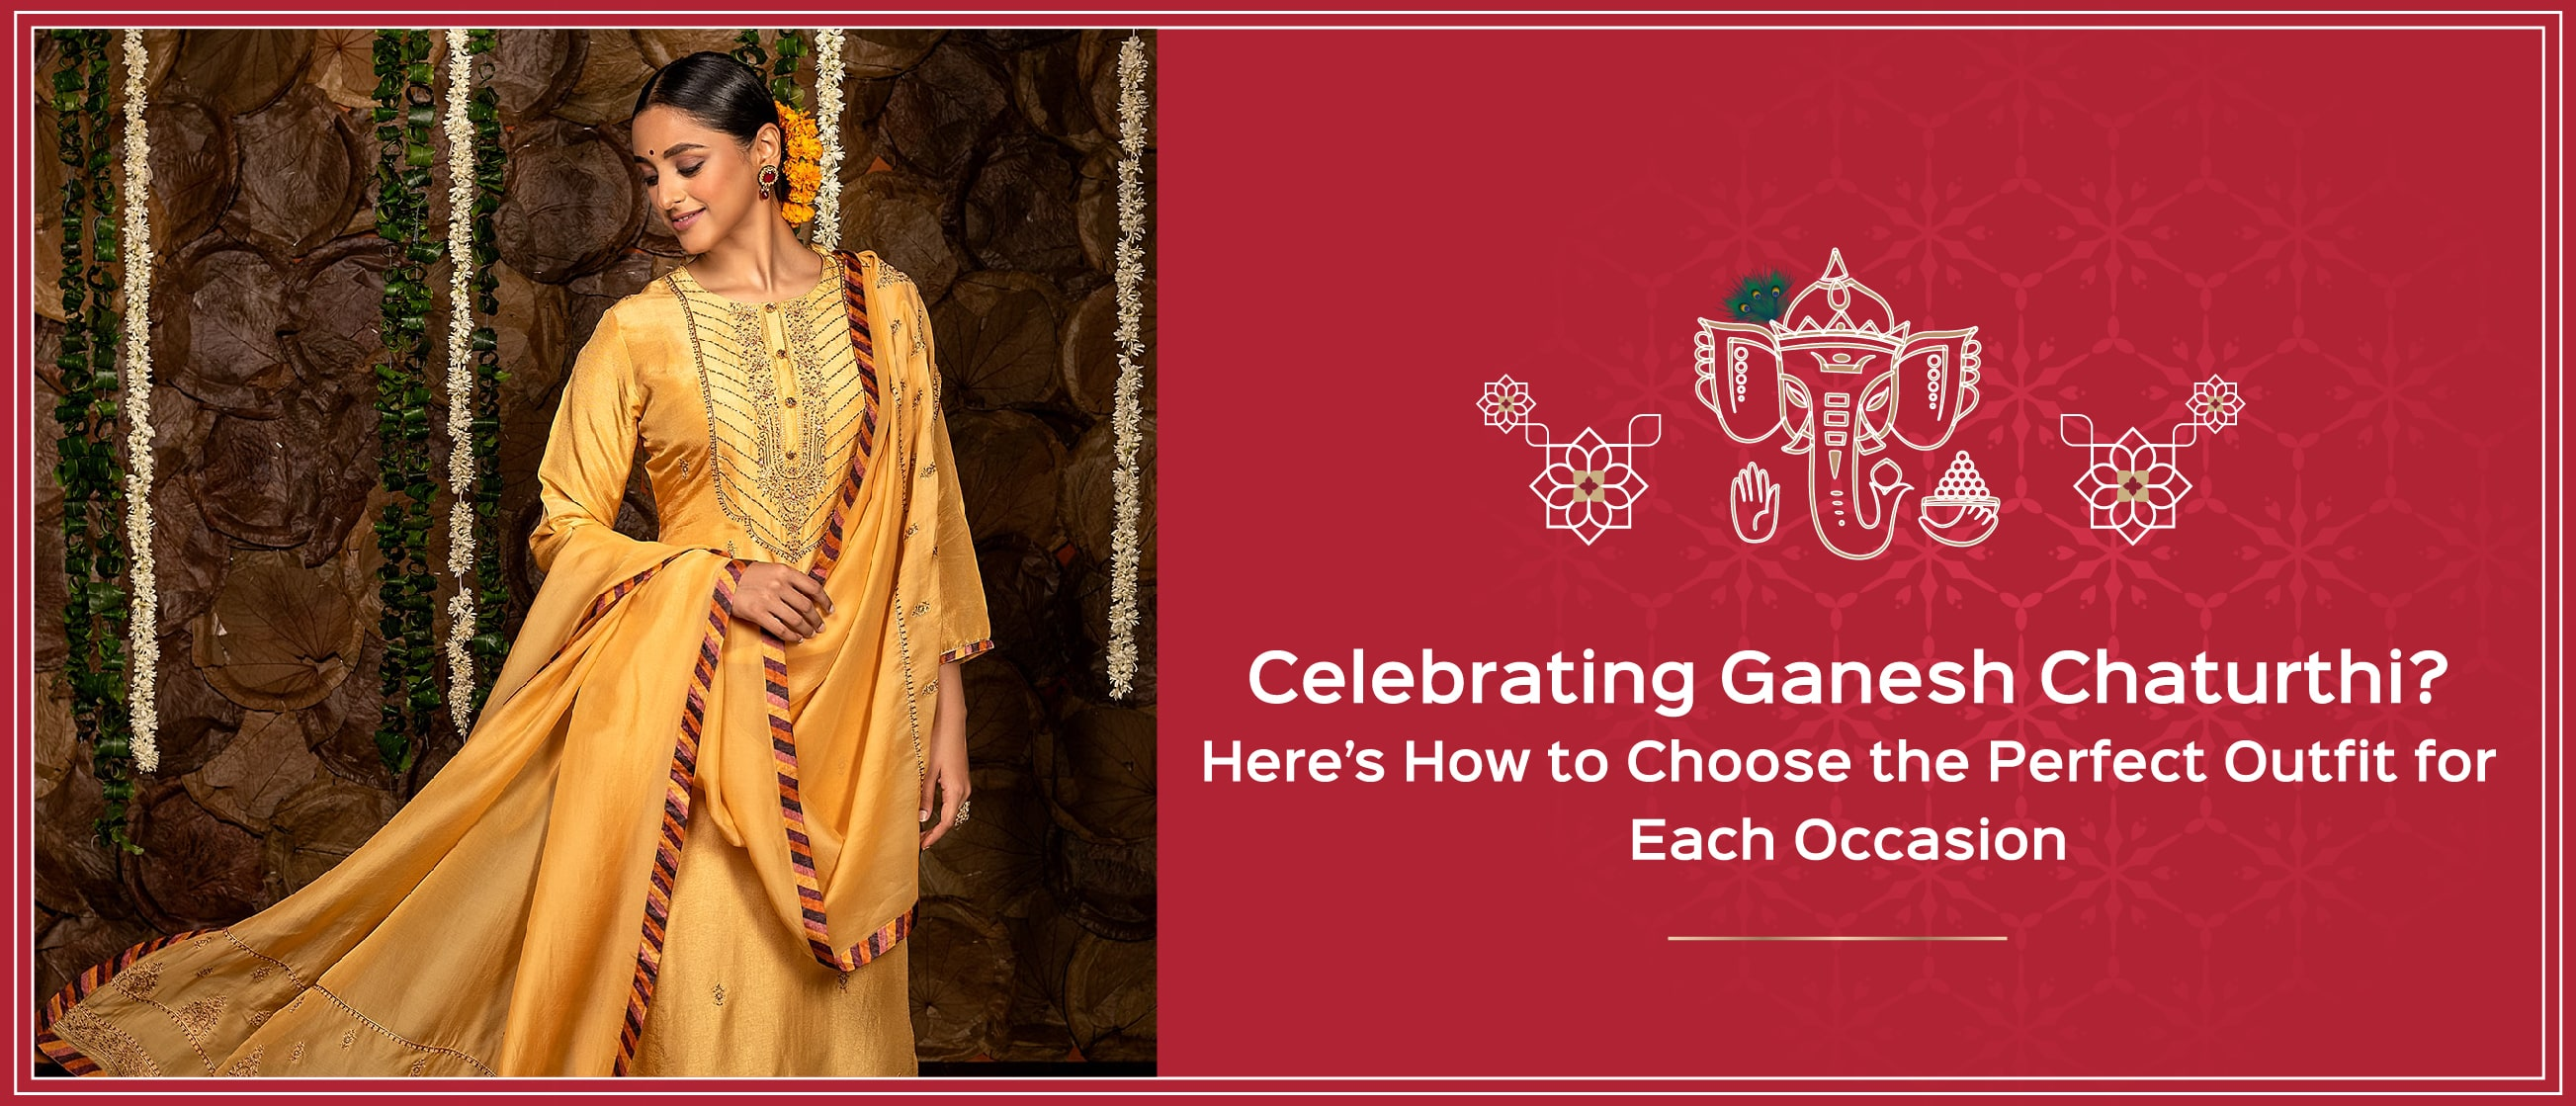 Celebrating Ganesh Chaturthi? Here's How to Choose the Perfect Outfit for Each Occasion